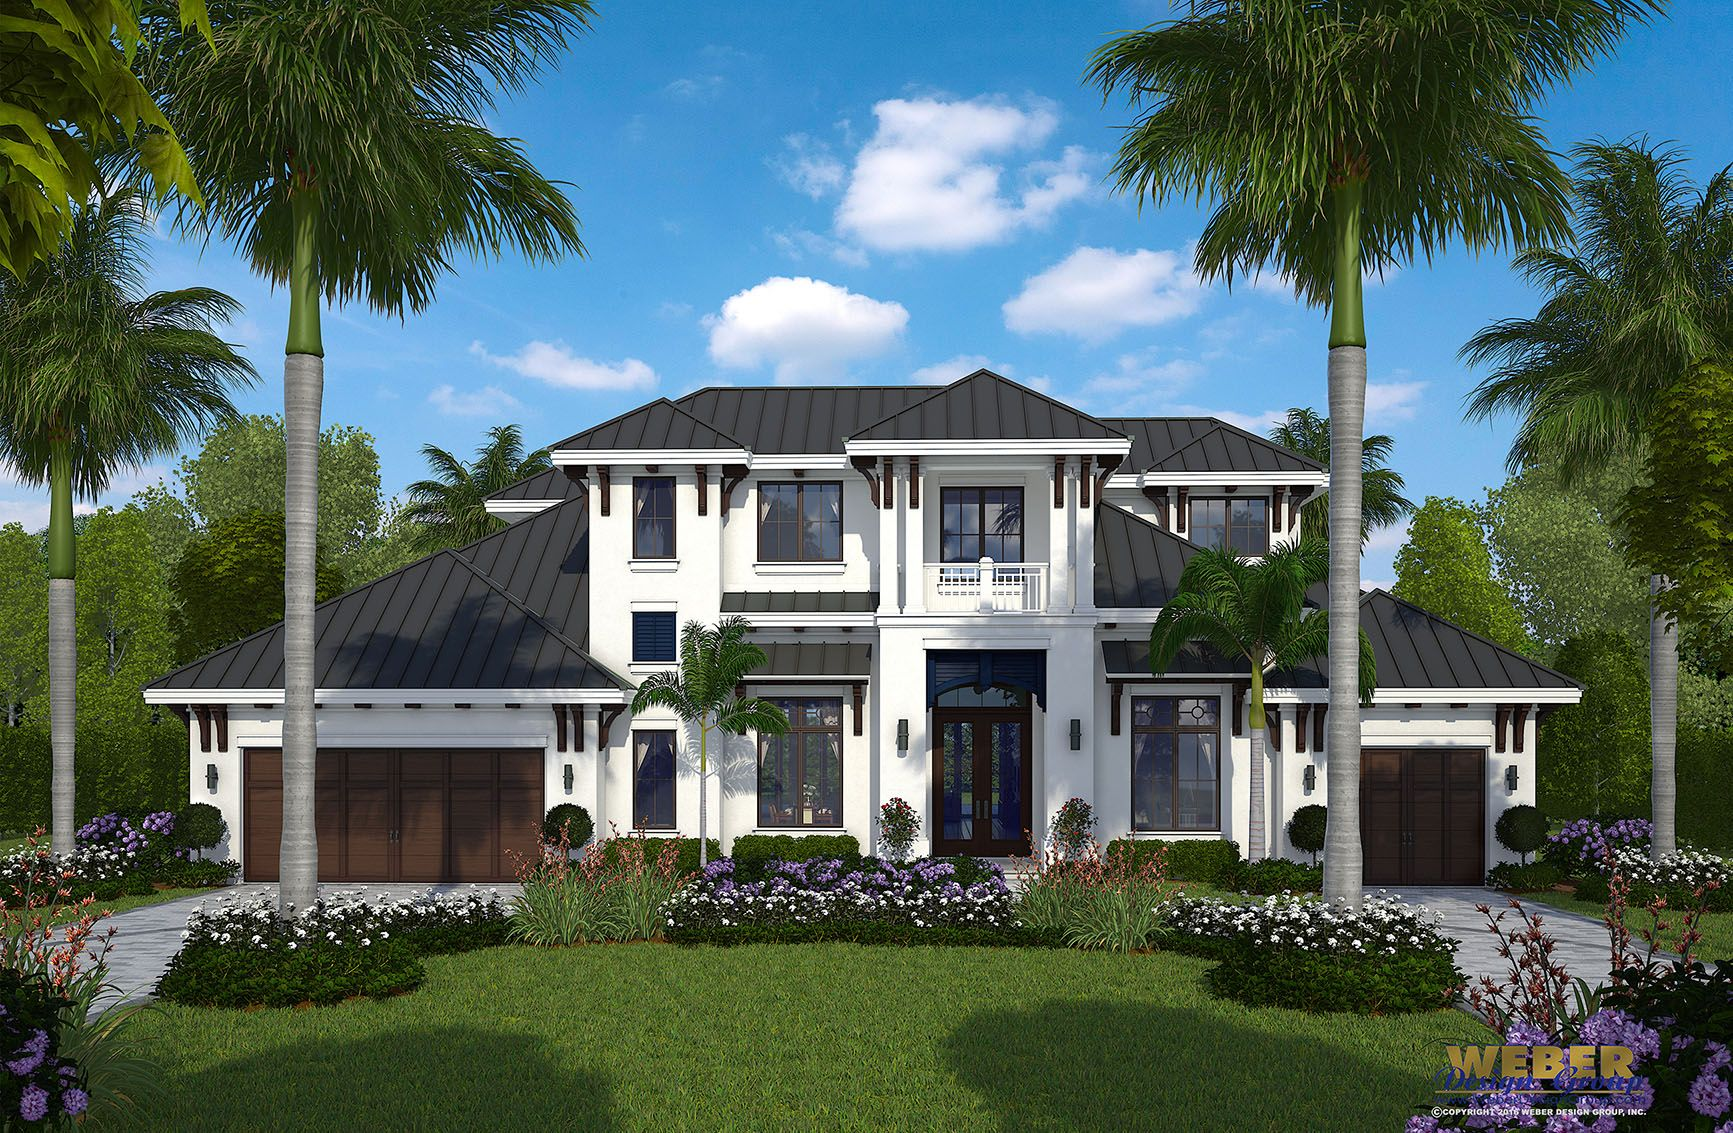 The Two Story House Plan Features A Coastal Transitional West Indies Architectural Style And Offers The Best Florida House Plans Luxury House Plans House Plans